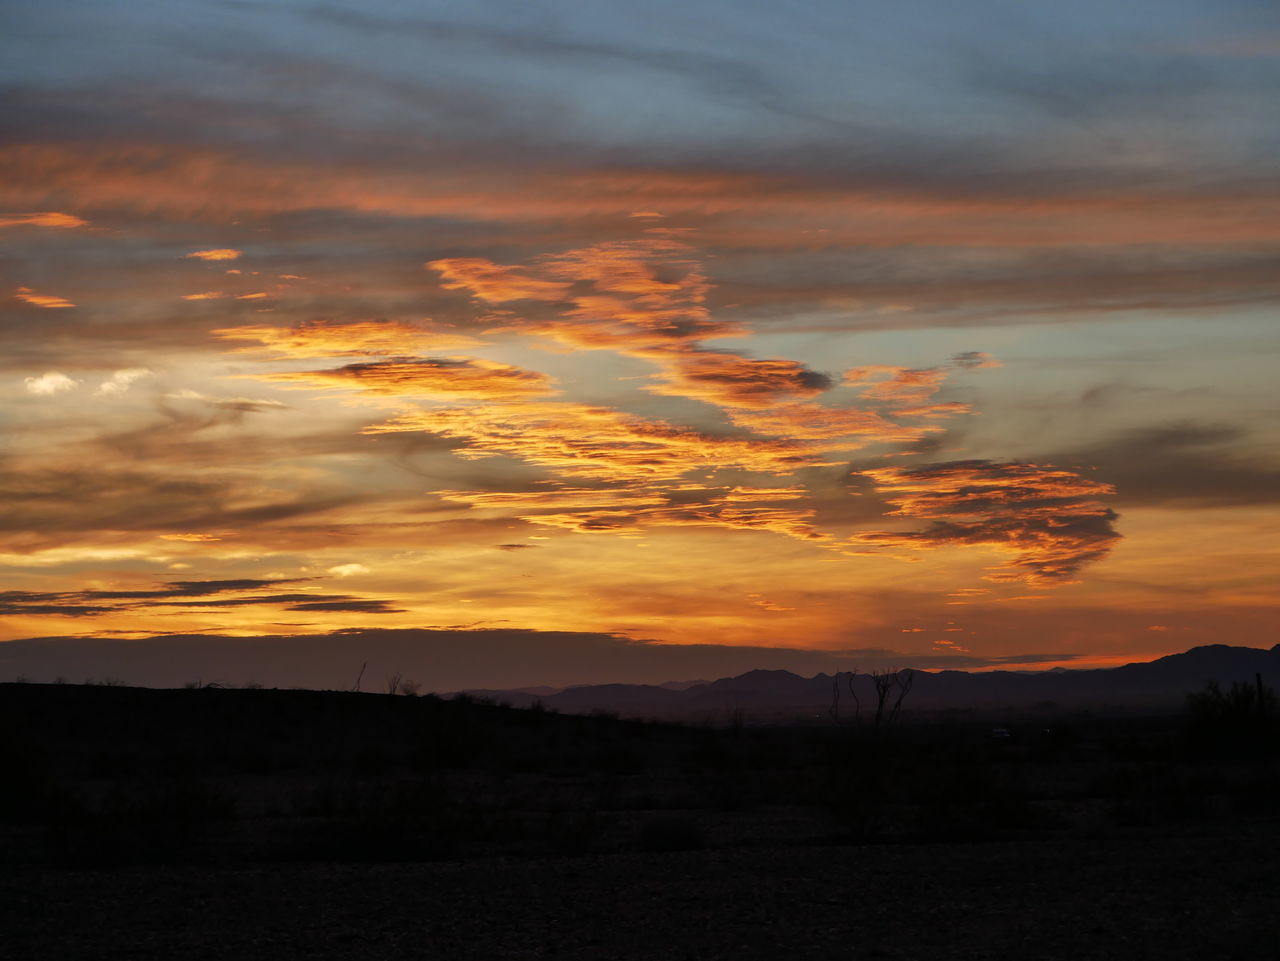 Sunset in southwest Arizona, looking west into California Arizona Arizona Desert Arizona Sky Arizona Sunsets Beauty In Nature Cloud - Sky Dramatic Sky Landscape Mountain Nature No People Outdoors Scenics Silhouette Sky Sunset